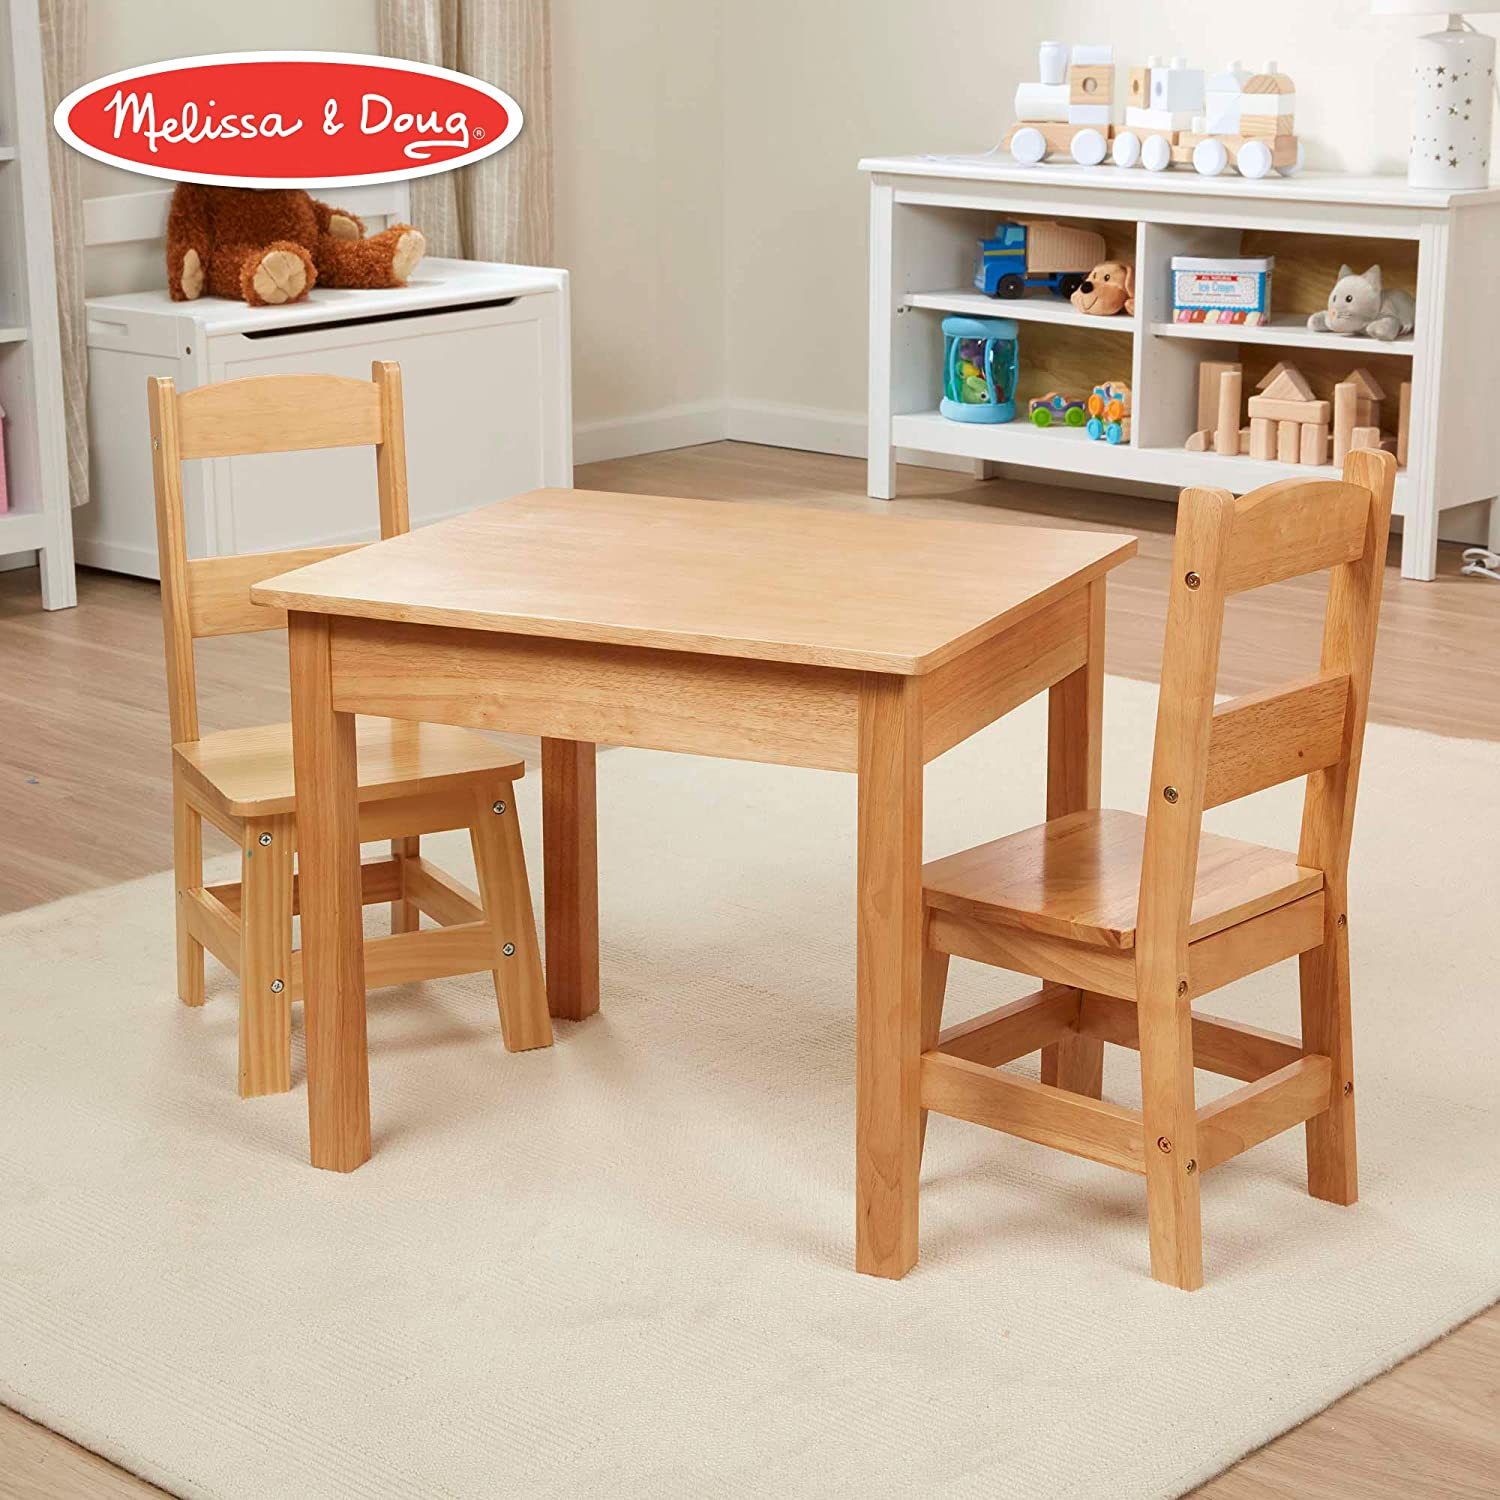 "4b41fc0f85cd2 Melissa & Doug Solid Wood Table & Chairs (Kids Furniture, Sturdy Wooden  Furniture, 3-Piece Set, 20"" H x 23.5"" W x 20.5"" L)"